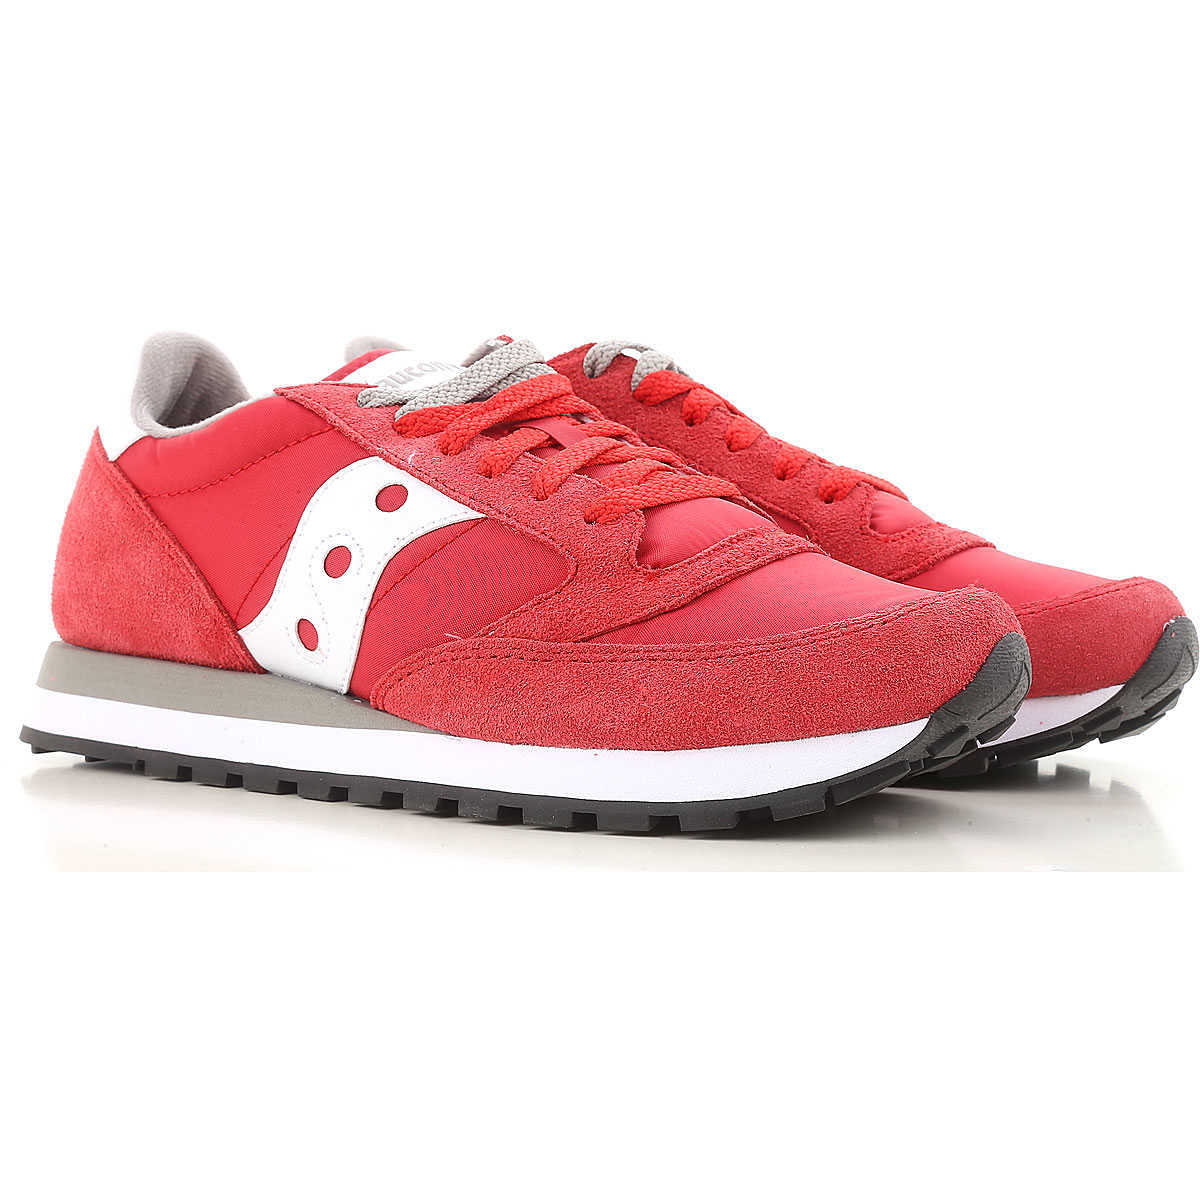 Saucony Sneakers for Men On Sale Red UK - GOOFASH